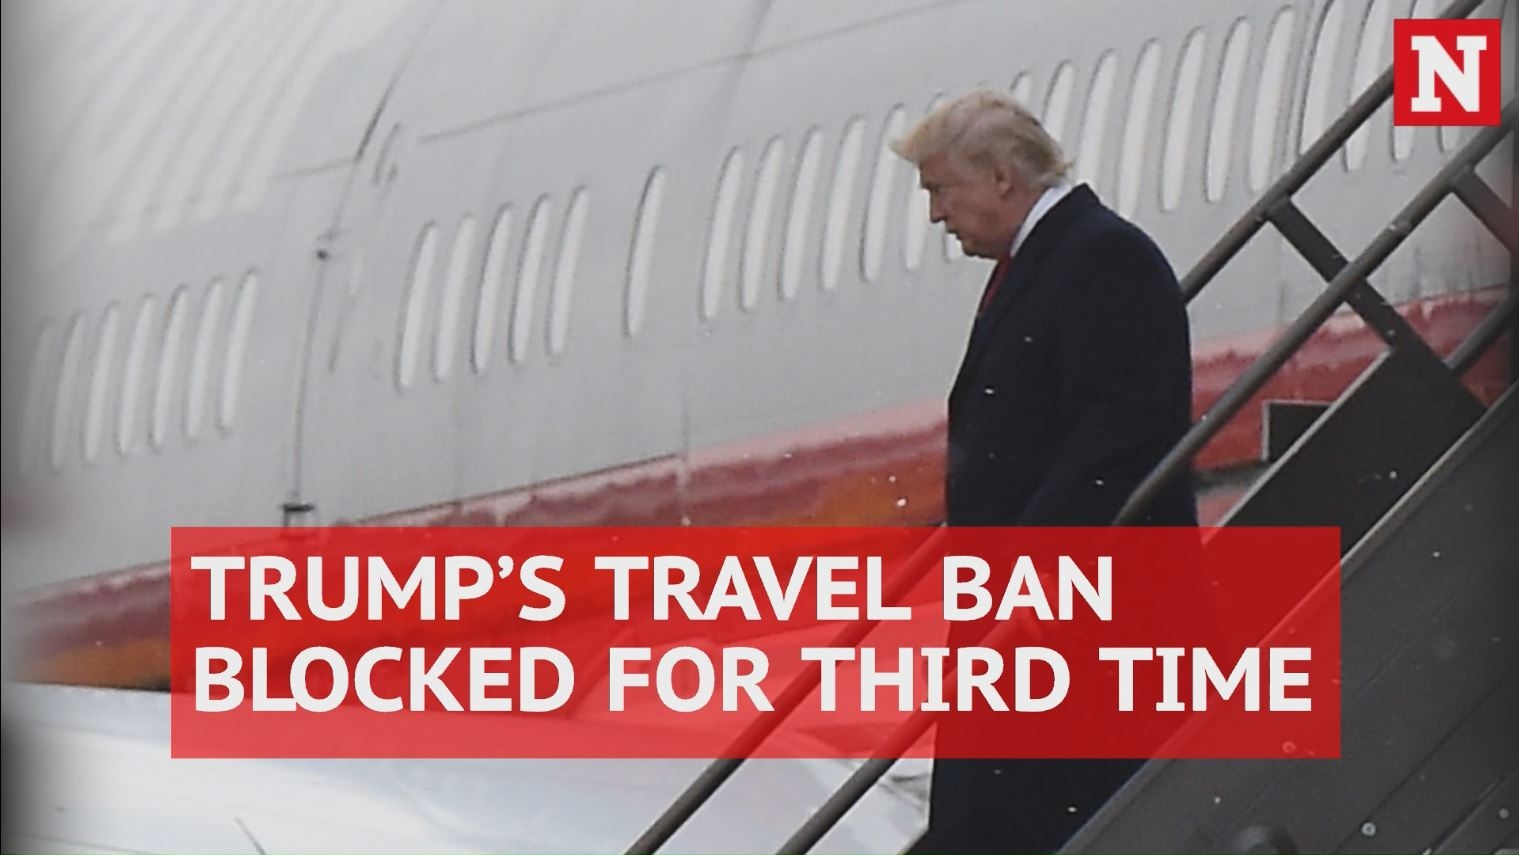 President Trump's travel ban blocked for third time by Hawaii federal judge